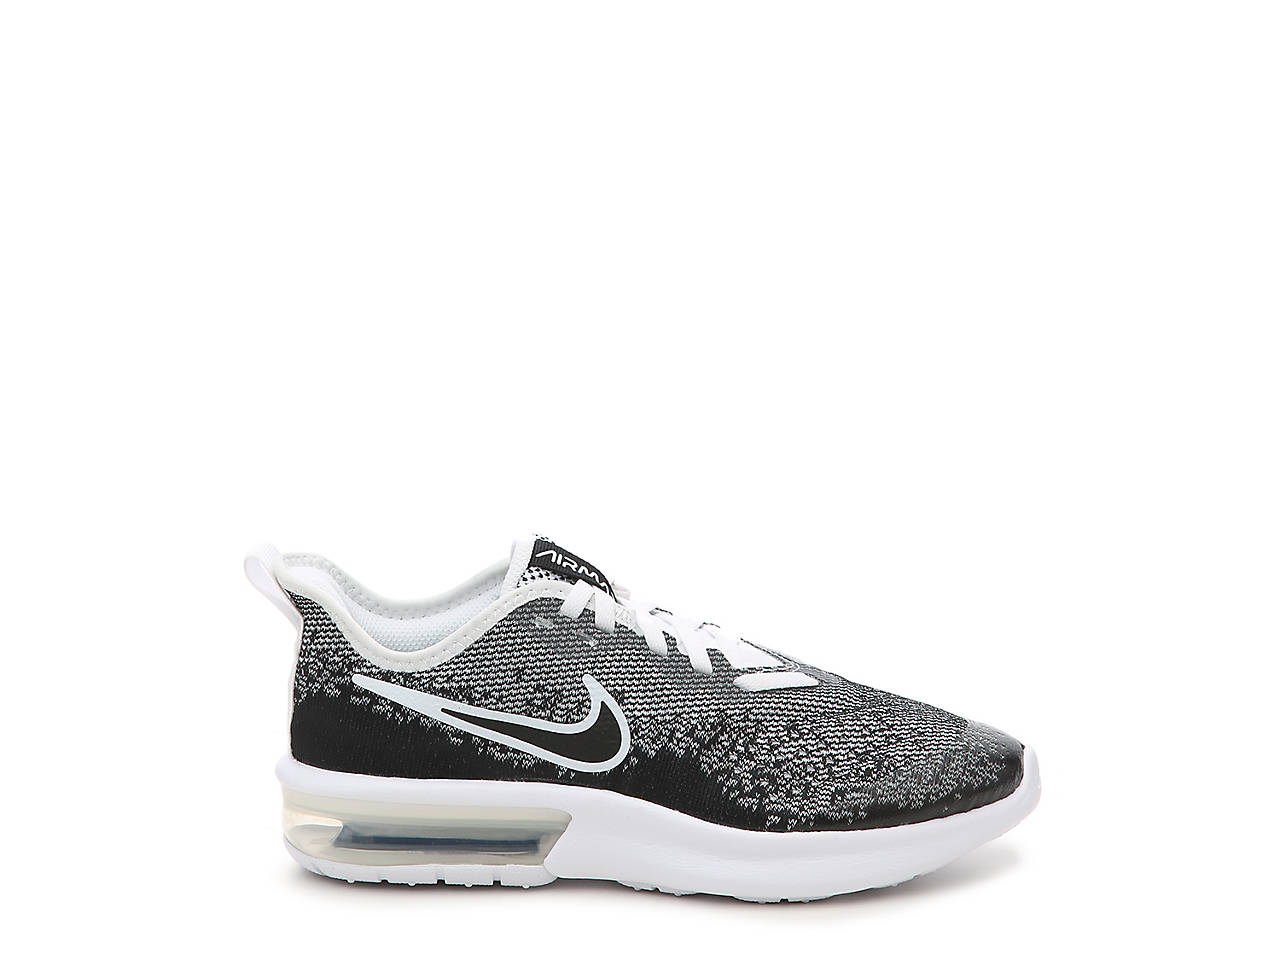 14e2f262396c8 Nike Air Max Sequent 4 Youth Running Shoe Kids Shoes